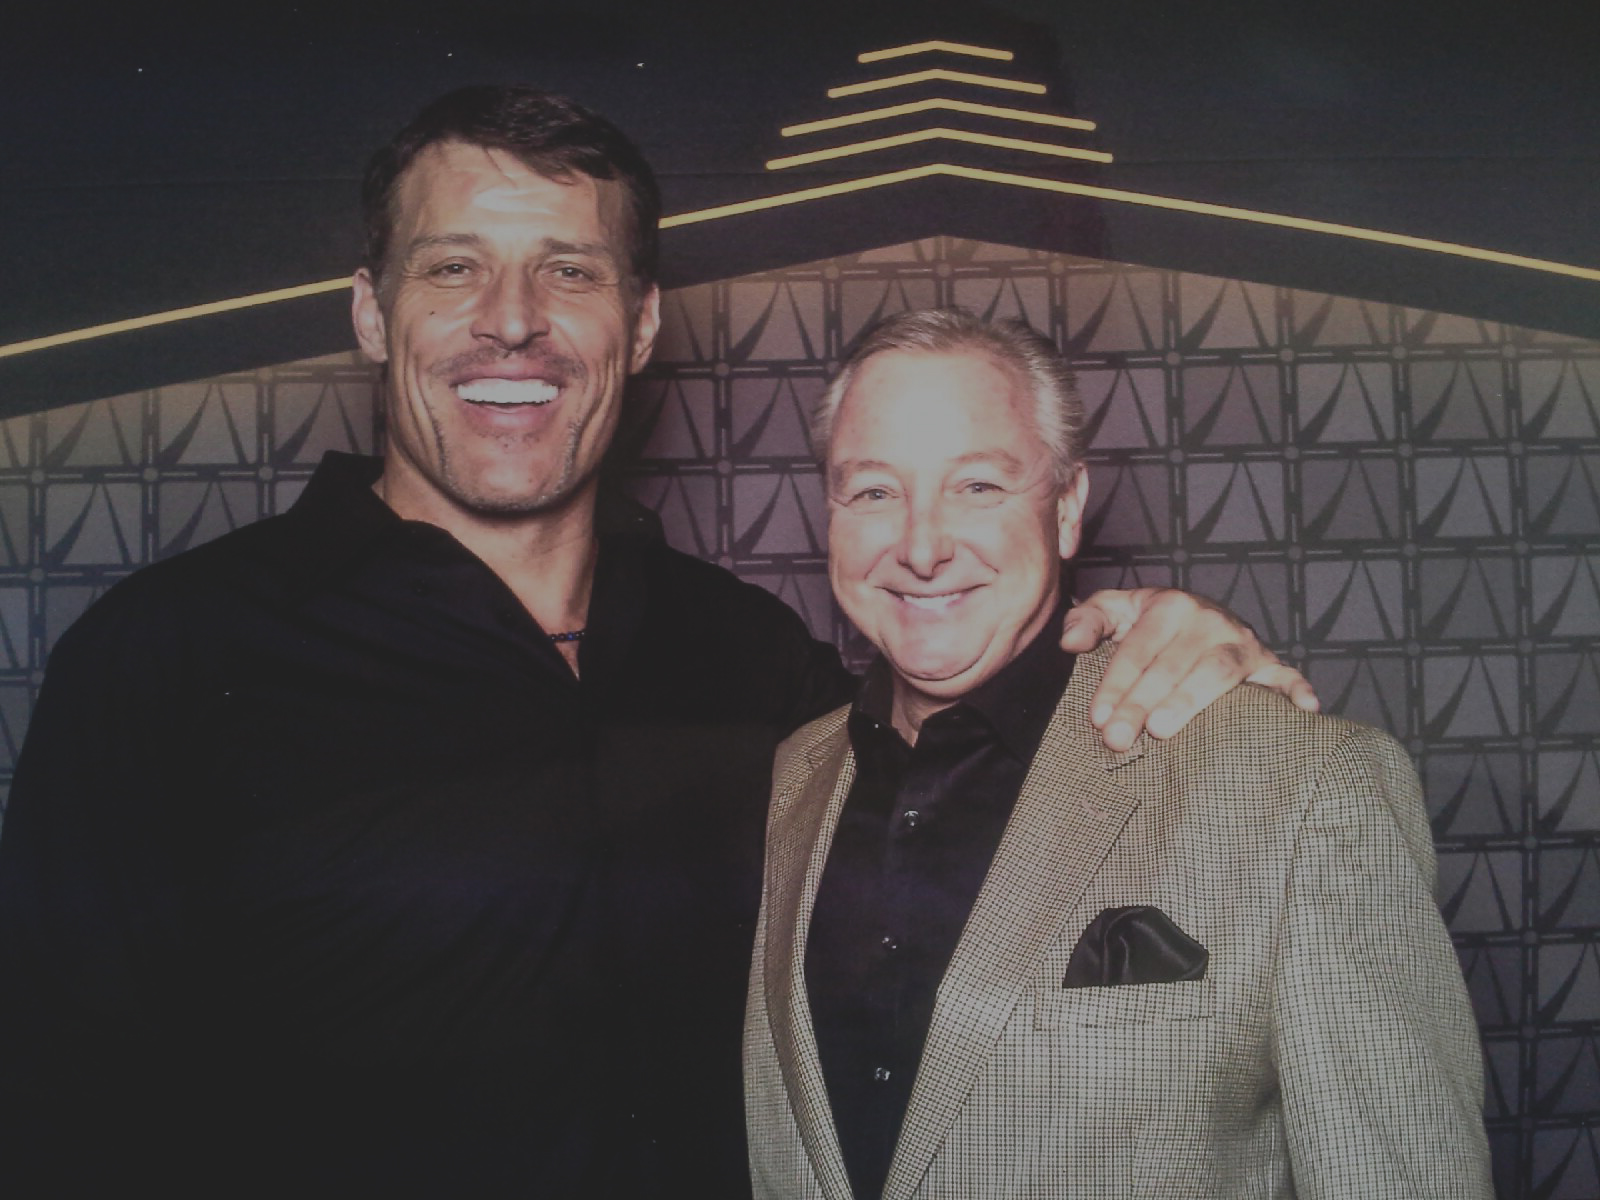 Tony Robbins and Jim